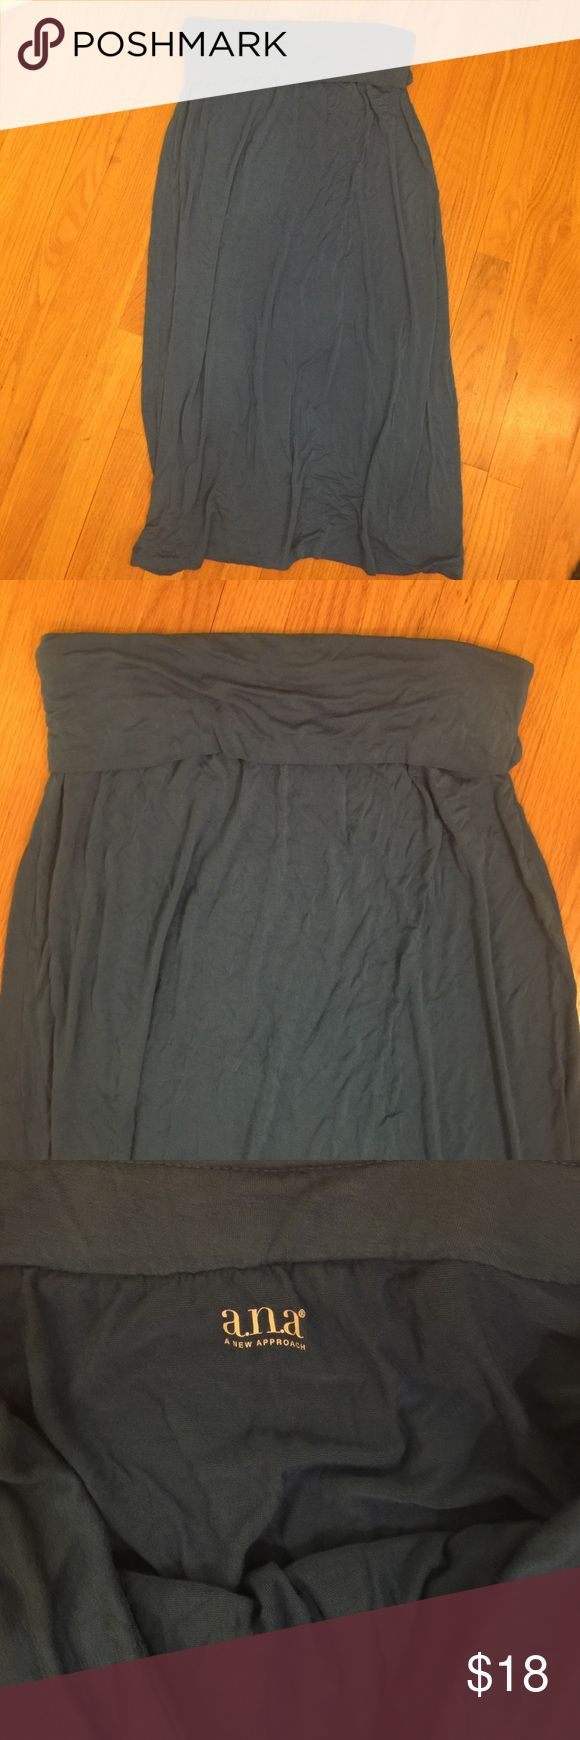 """Women's a.n.a Blue Maxi Skirt Size L Women's a.n.a Blue Maxi Skirt Size Large. 95% Rayon, 5% Spandex. Great condition. Measures approx 35"""" long. No slits. a.n.a Skirts Maxi"""